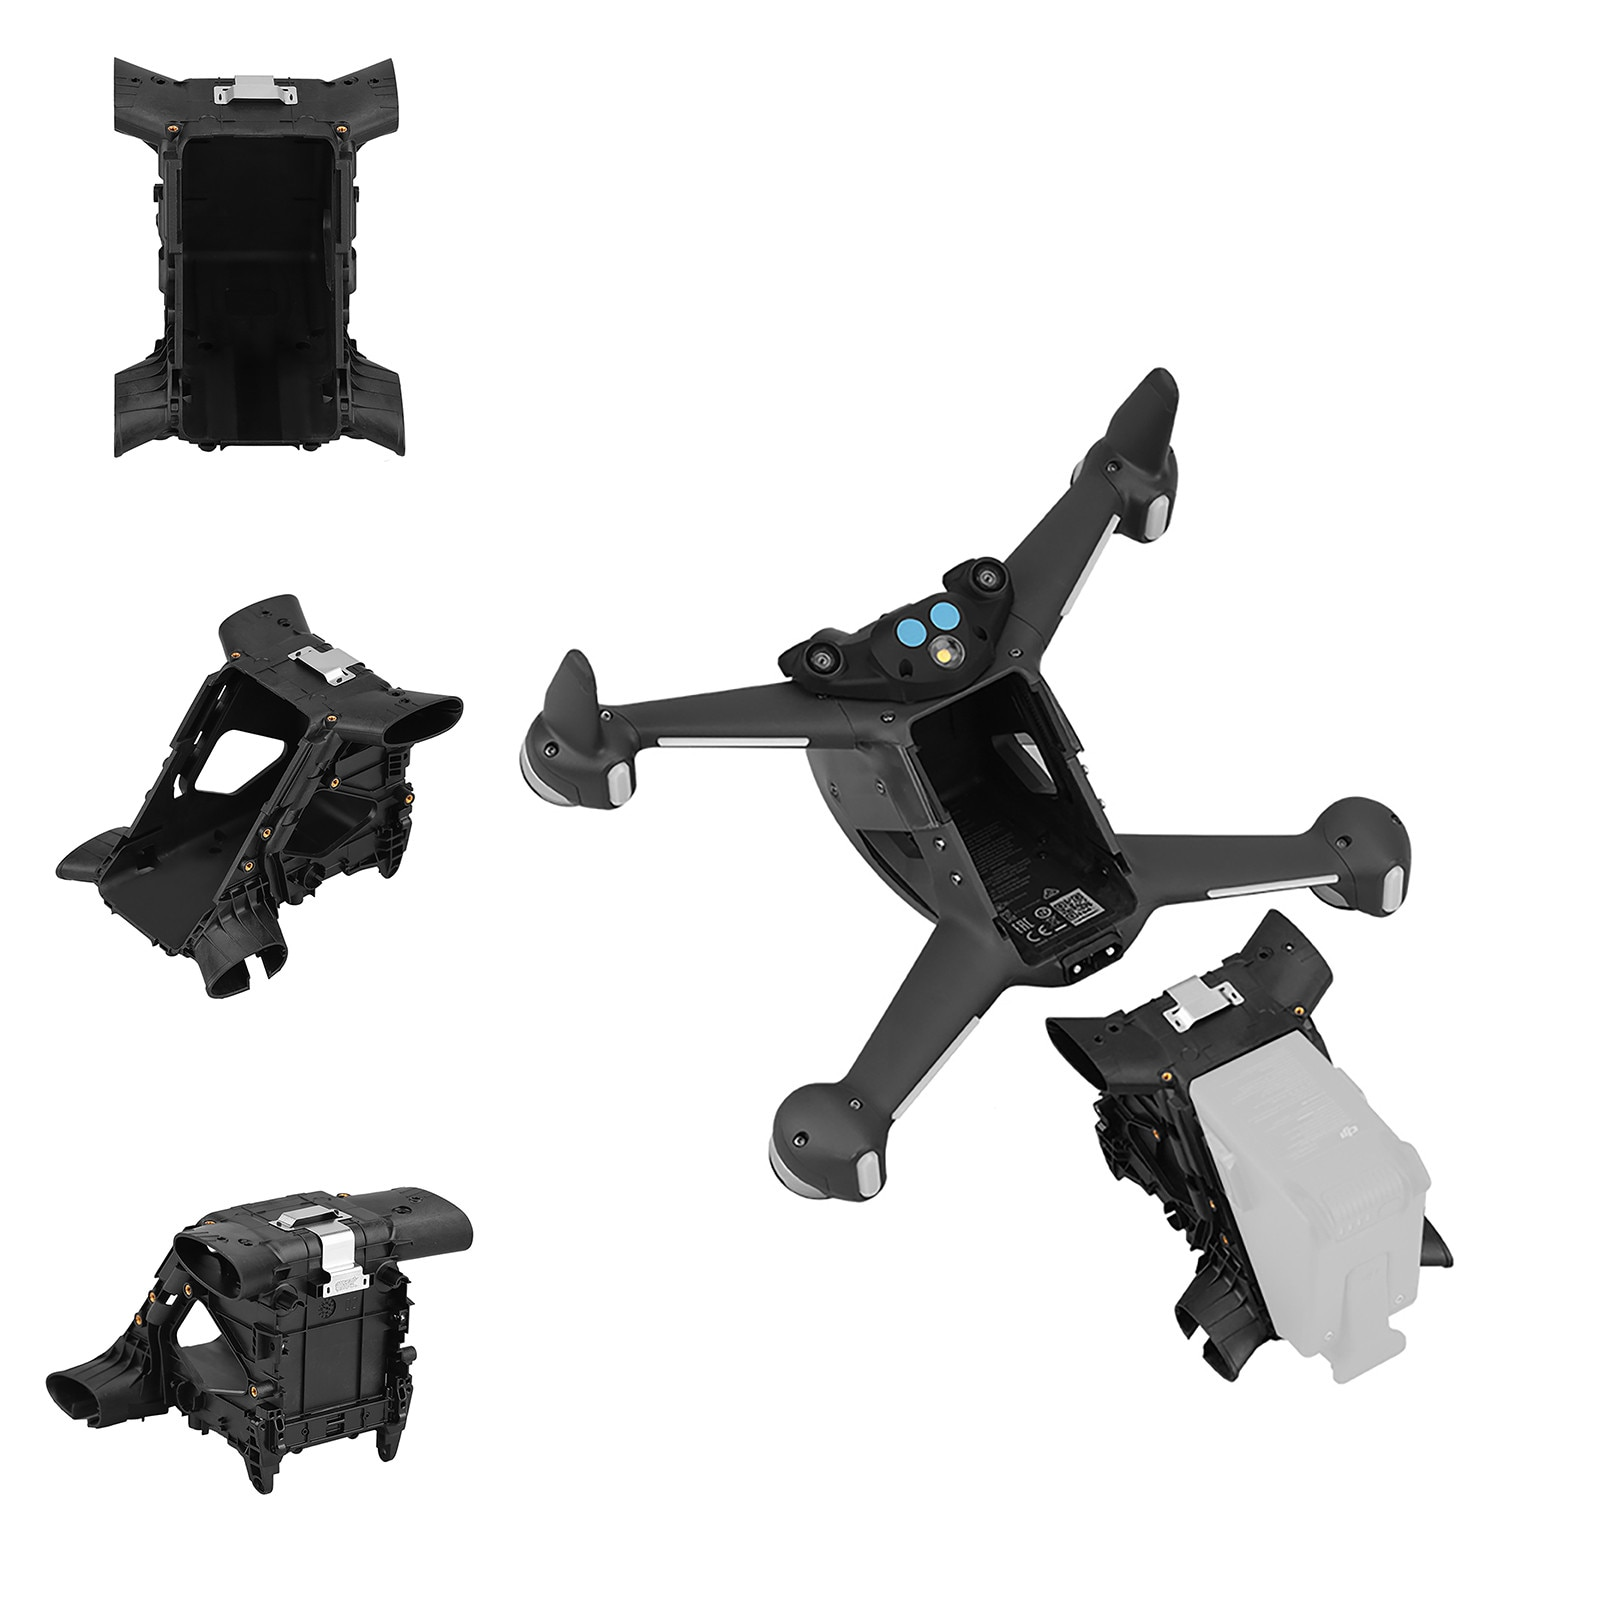 Original Dji Fpv Drone Middle Frame Shell Is Suitable For Dji Fpv Drone Body Repair Parts And Model Airplane Accessories #K